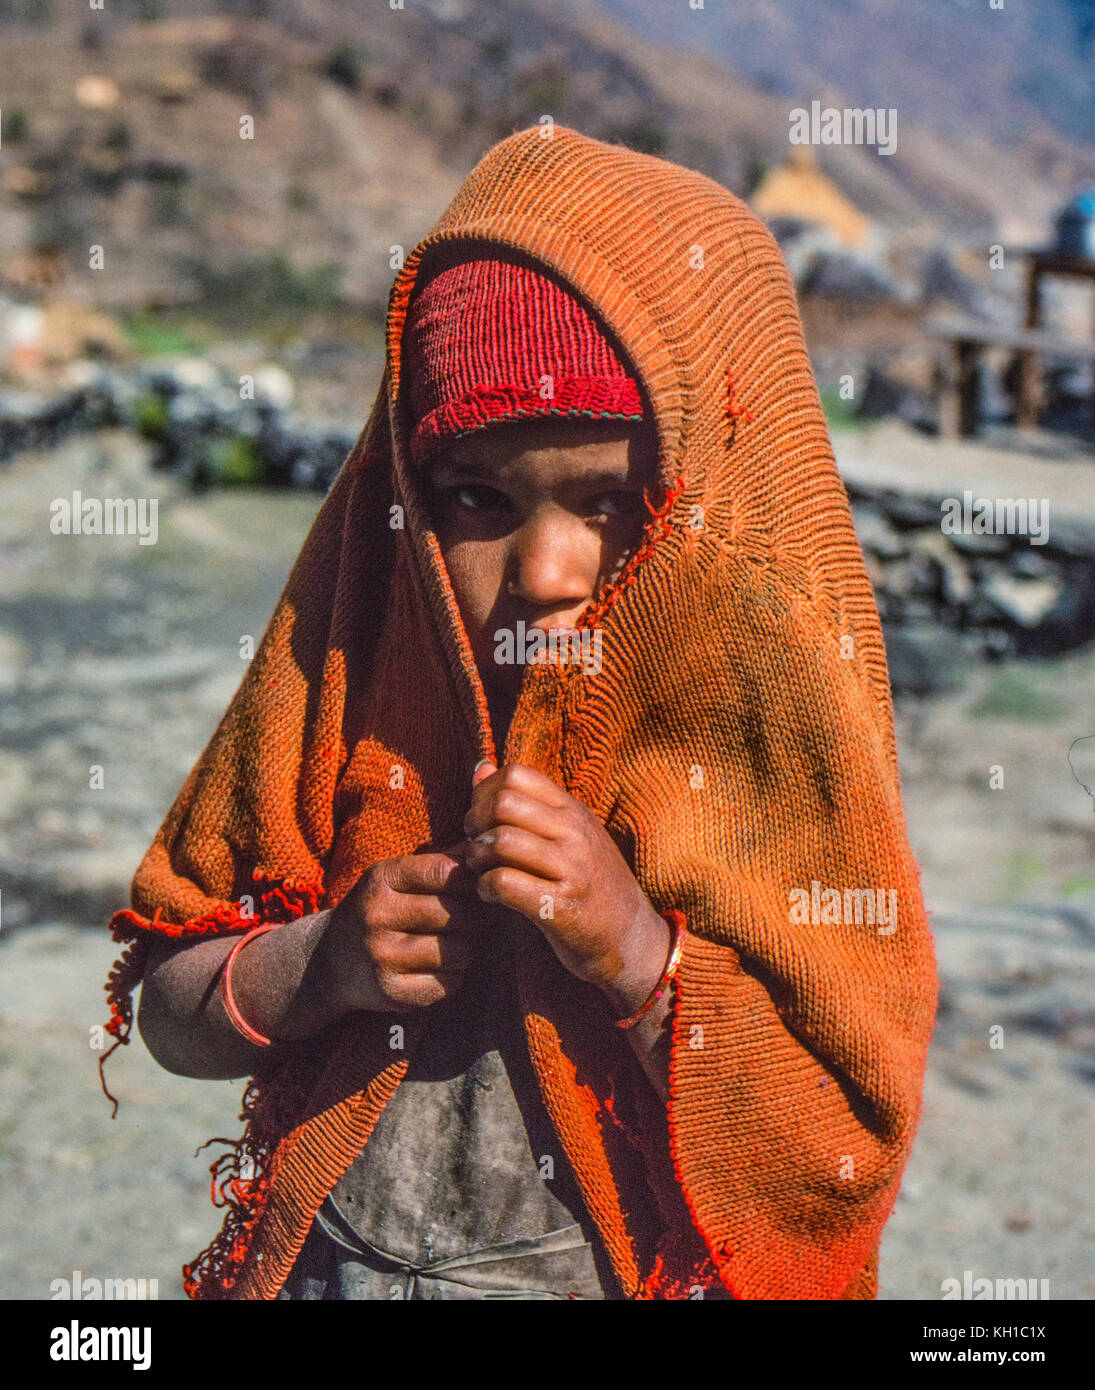 Nepali Child Covering Her Head - Stock Image